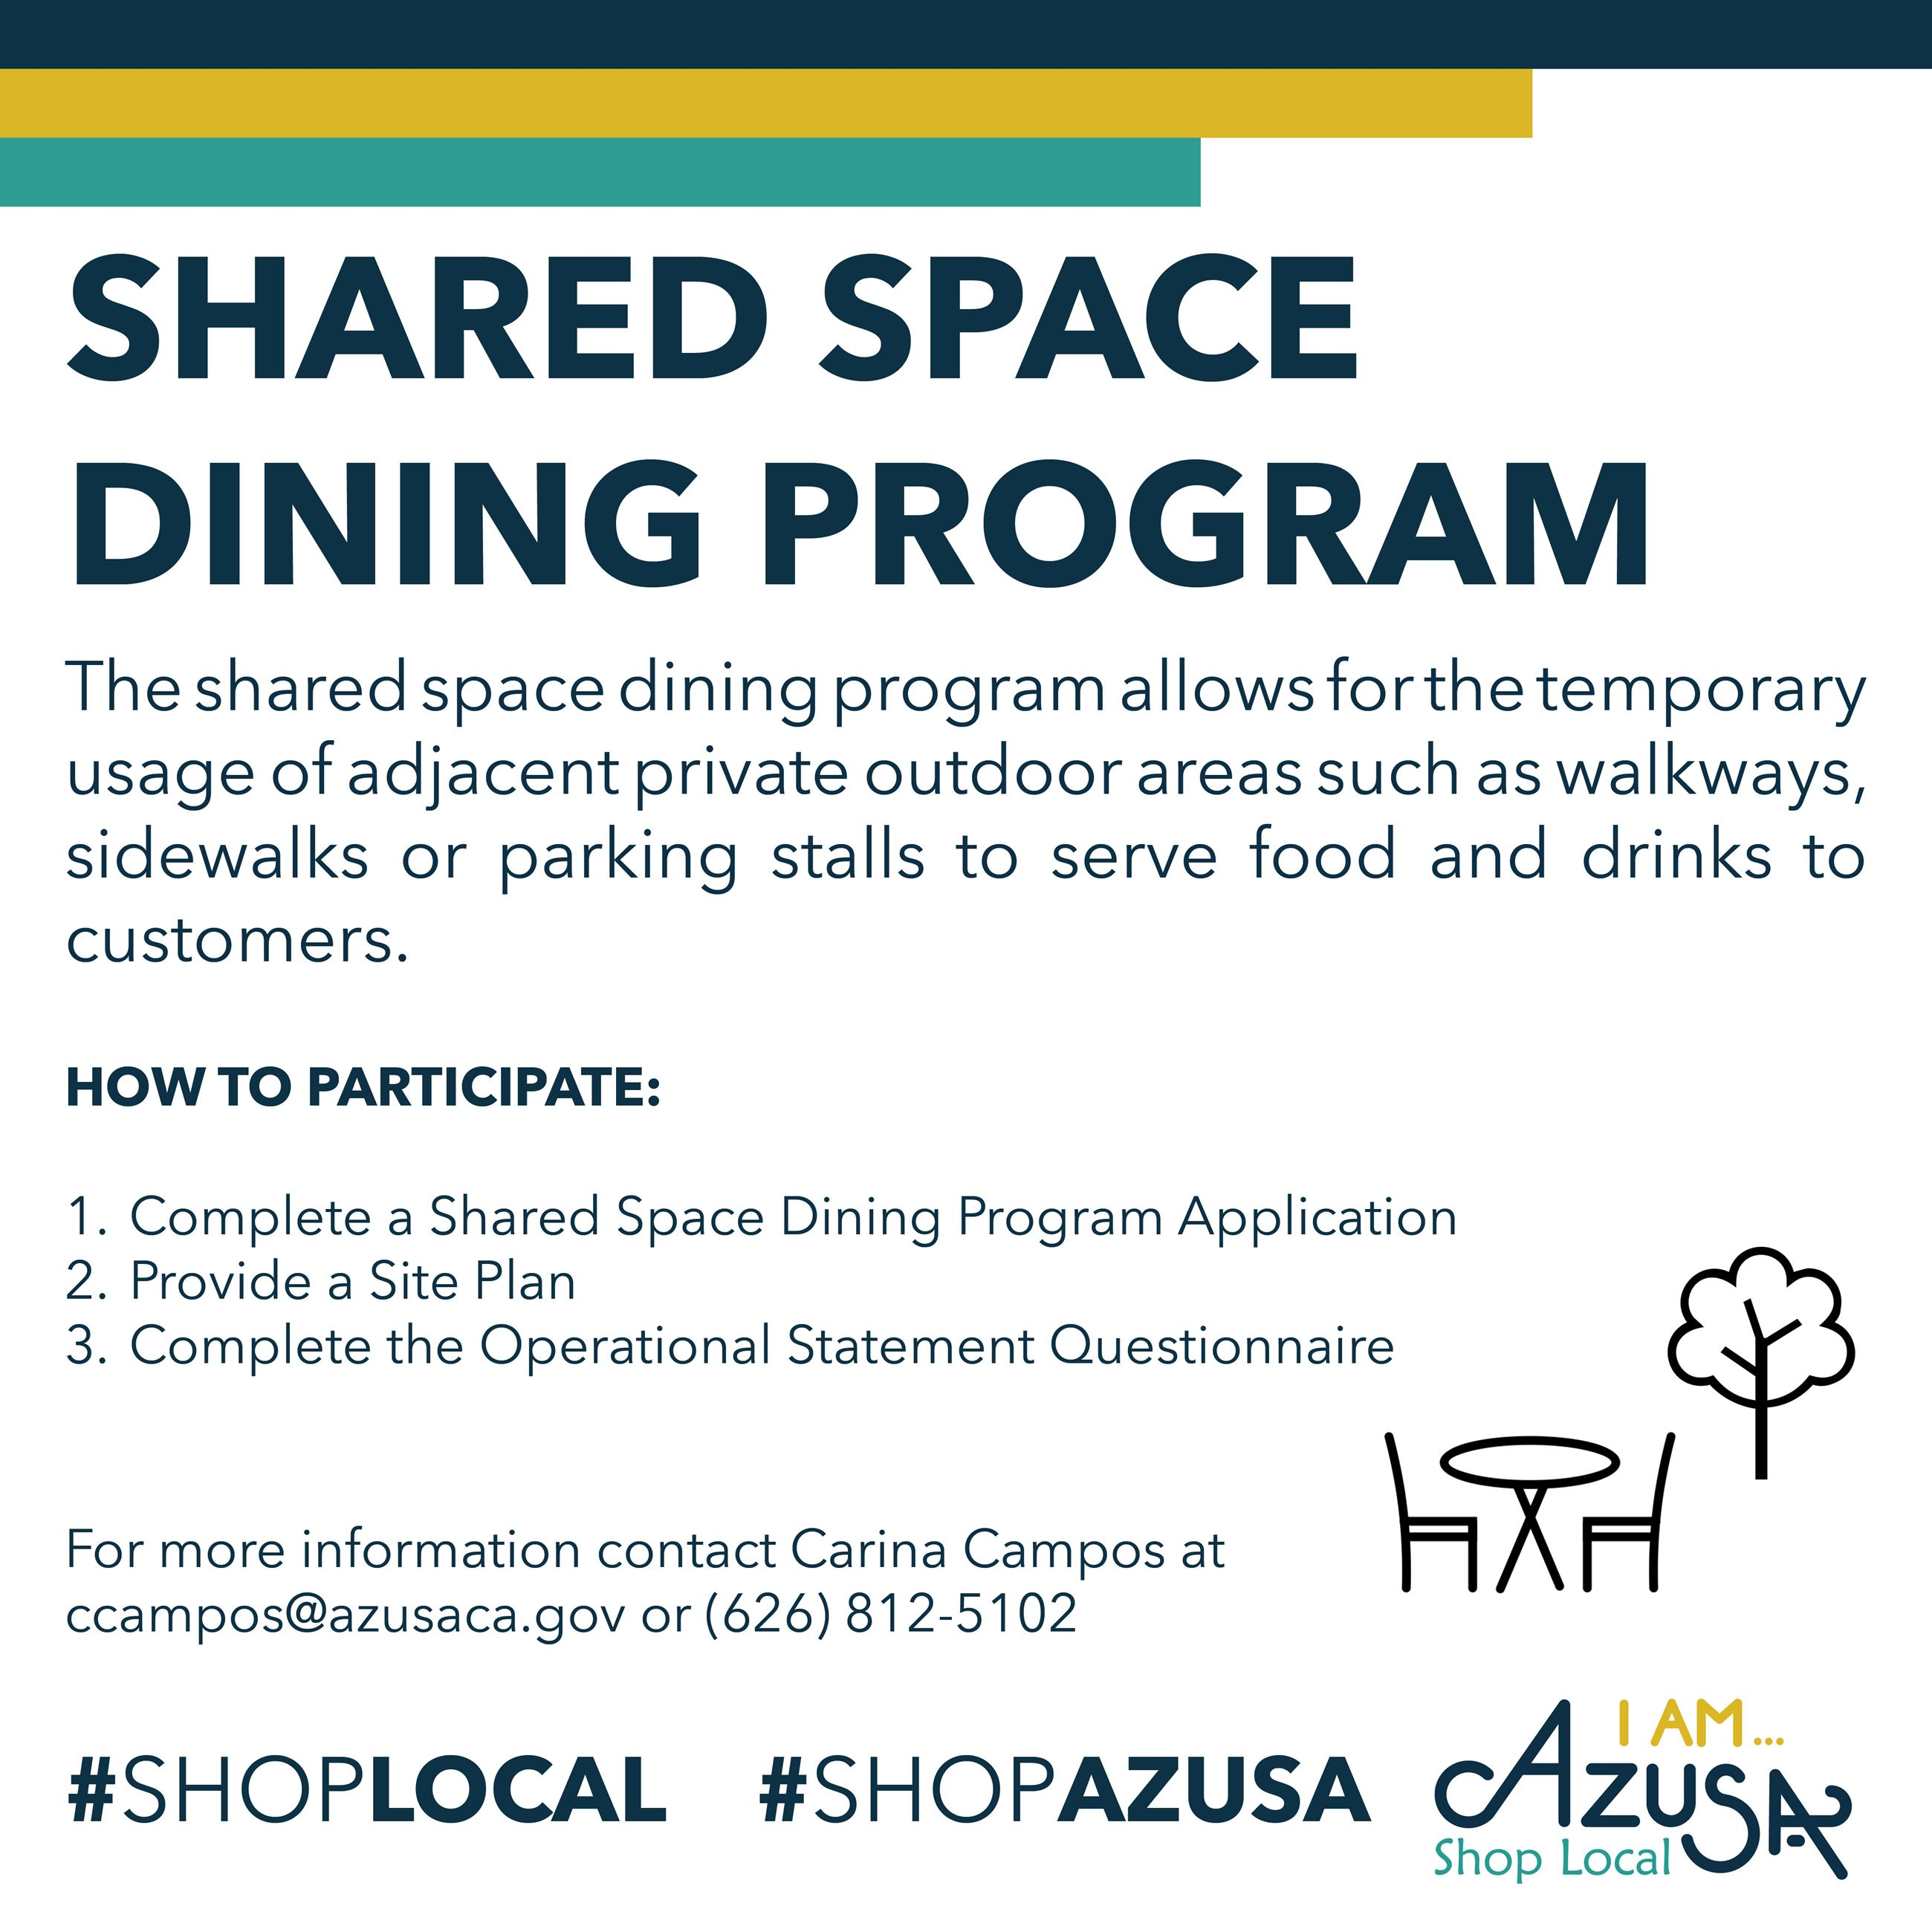 Shared Space Dining